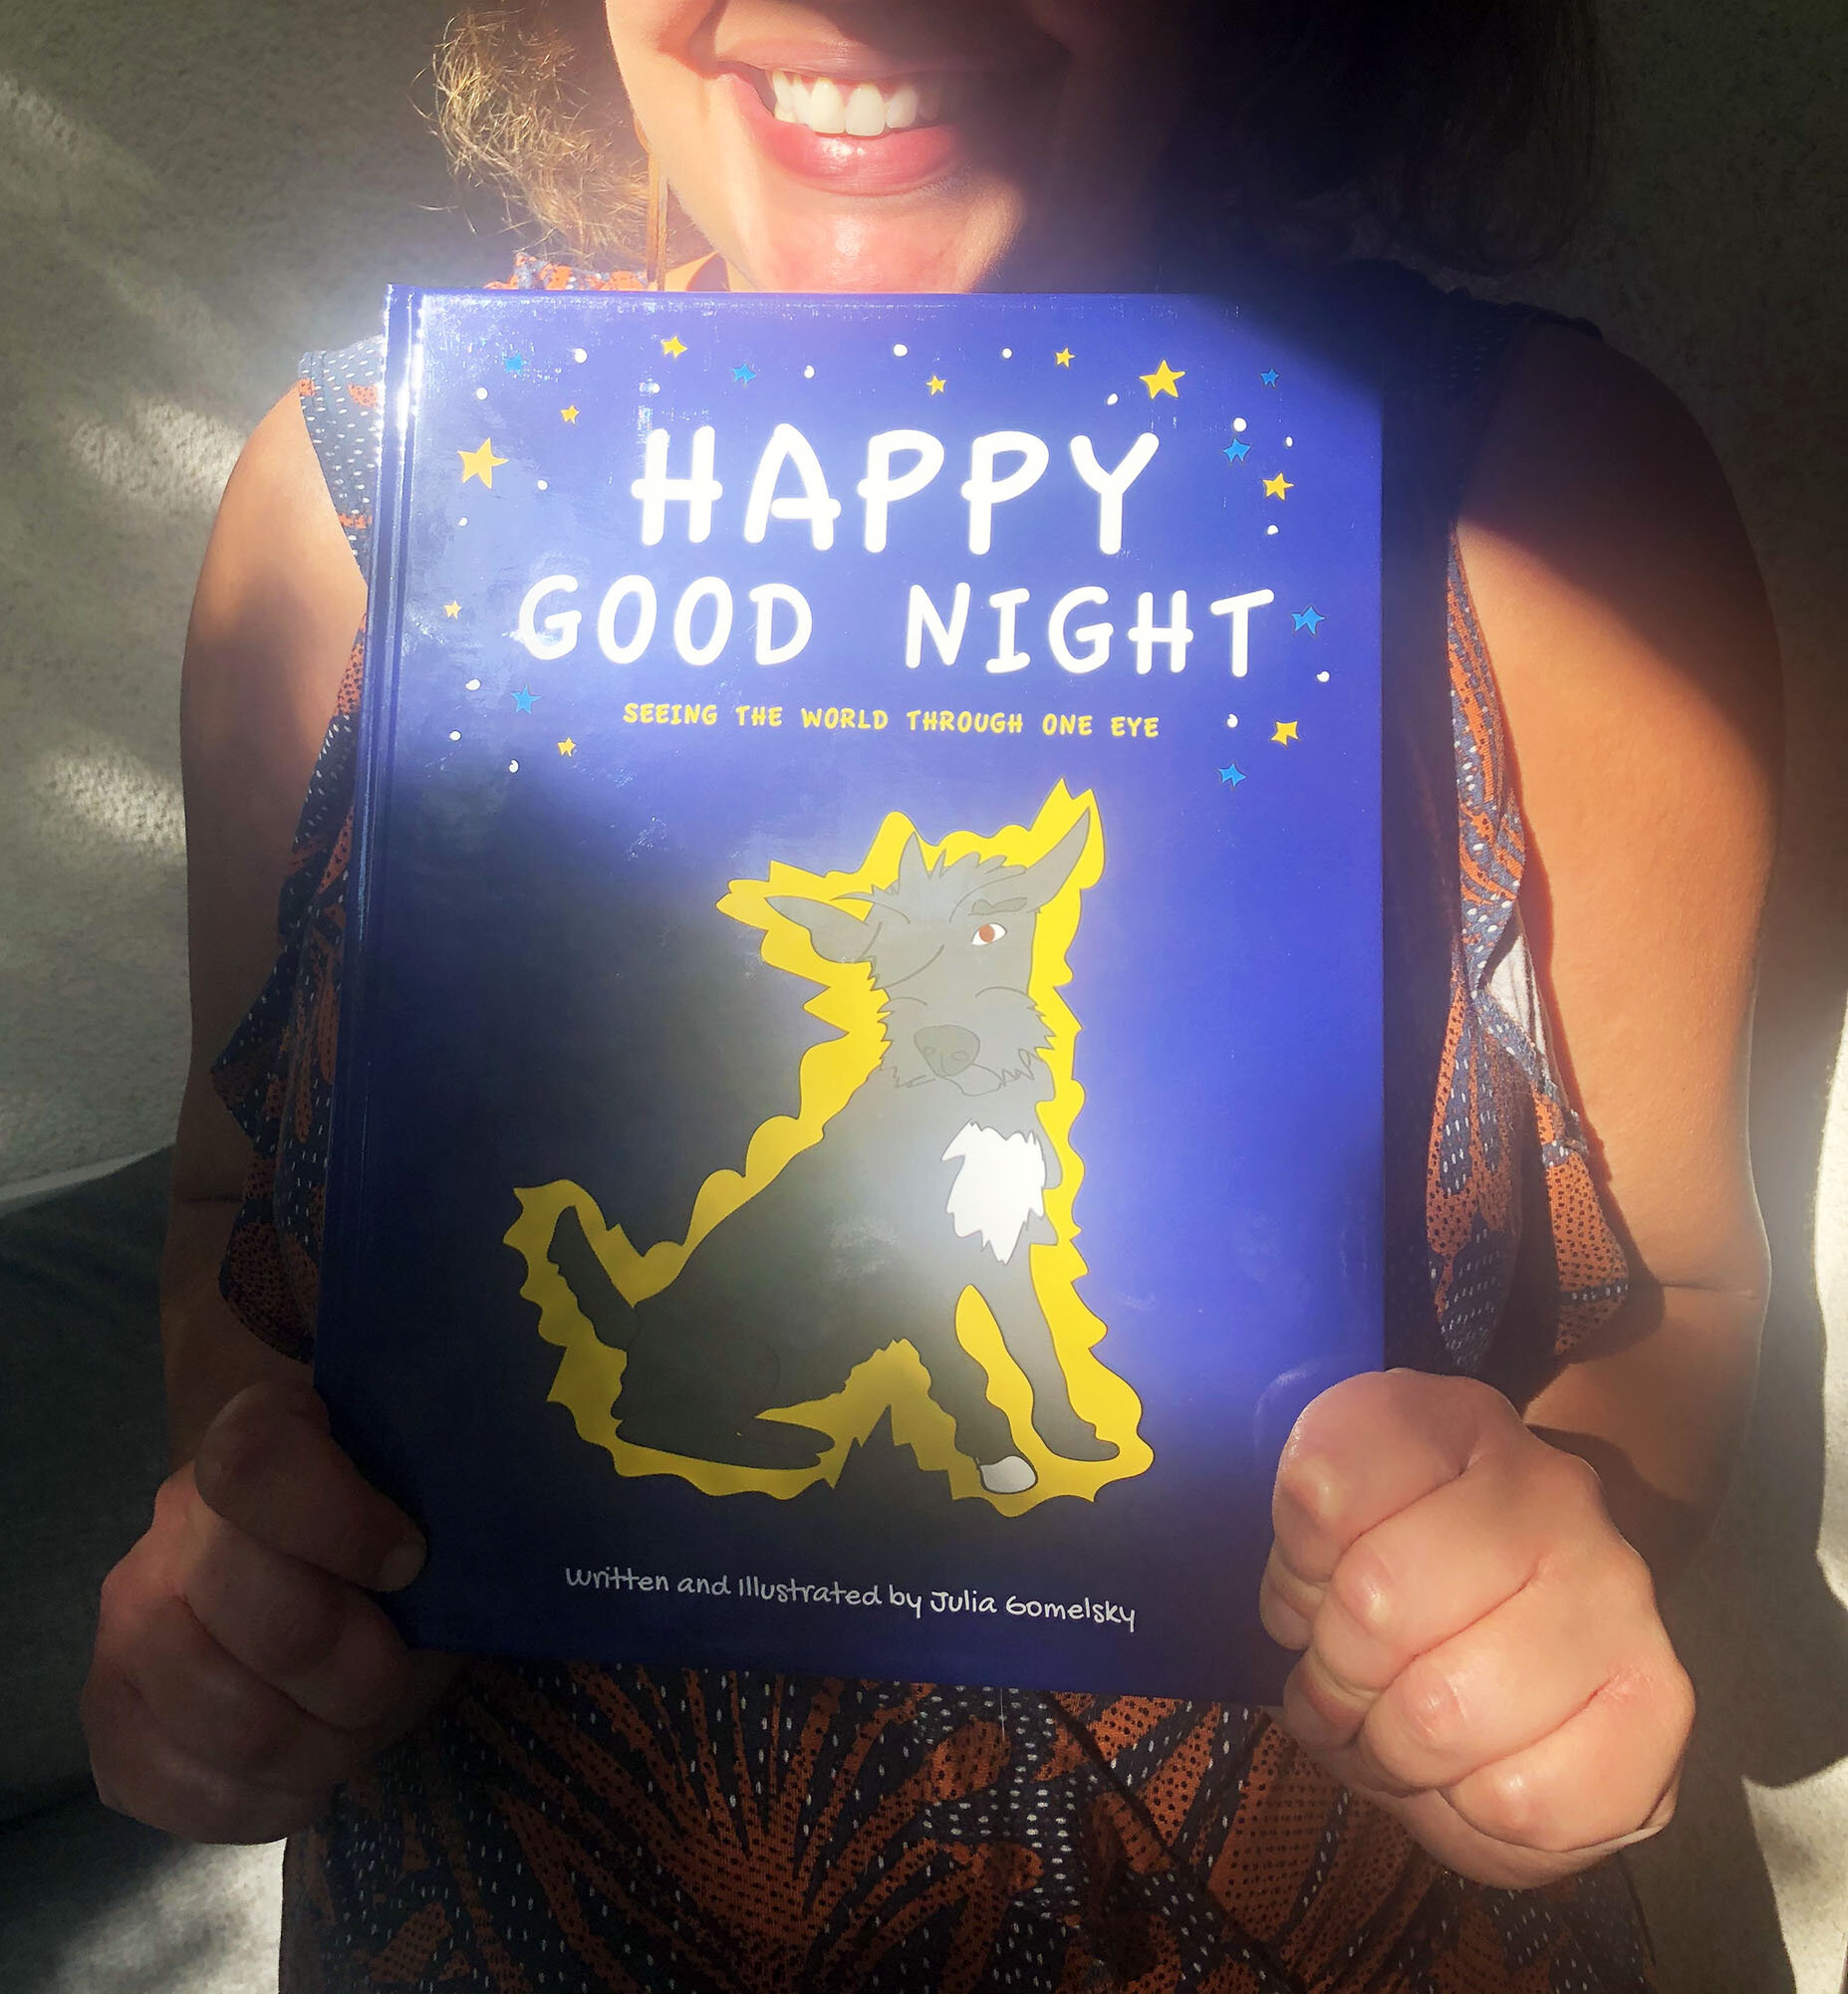 Happy Good Night illustrative book by Julia Gomelsky